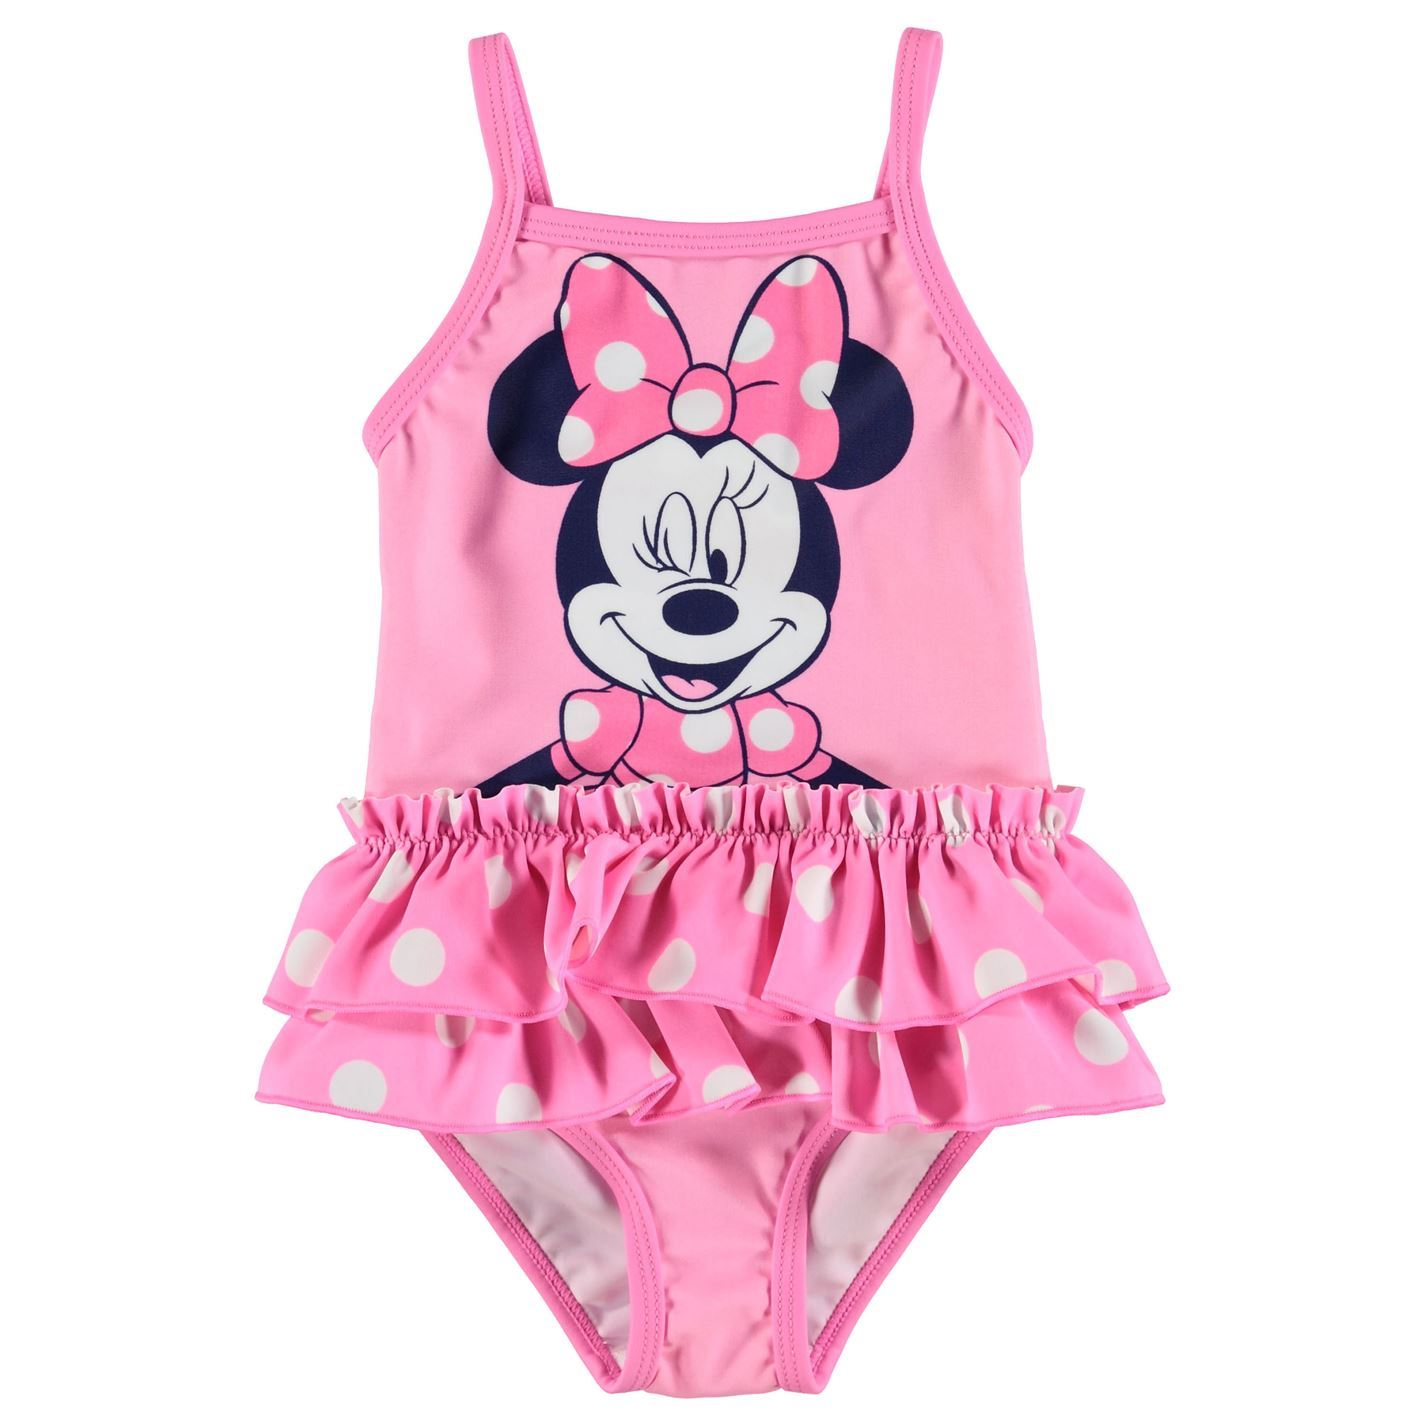 4220458c99c6f Details about Disney Minnie Mouse Swim Suit Baby Girl Pink Swimming Costume  Beachwear